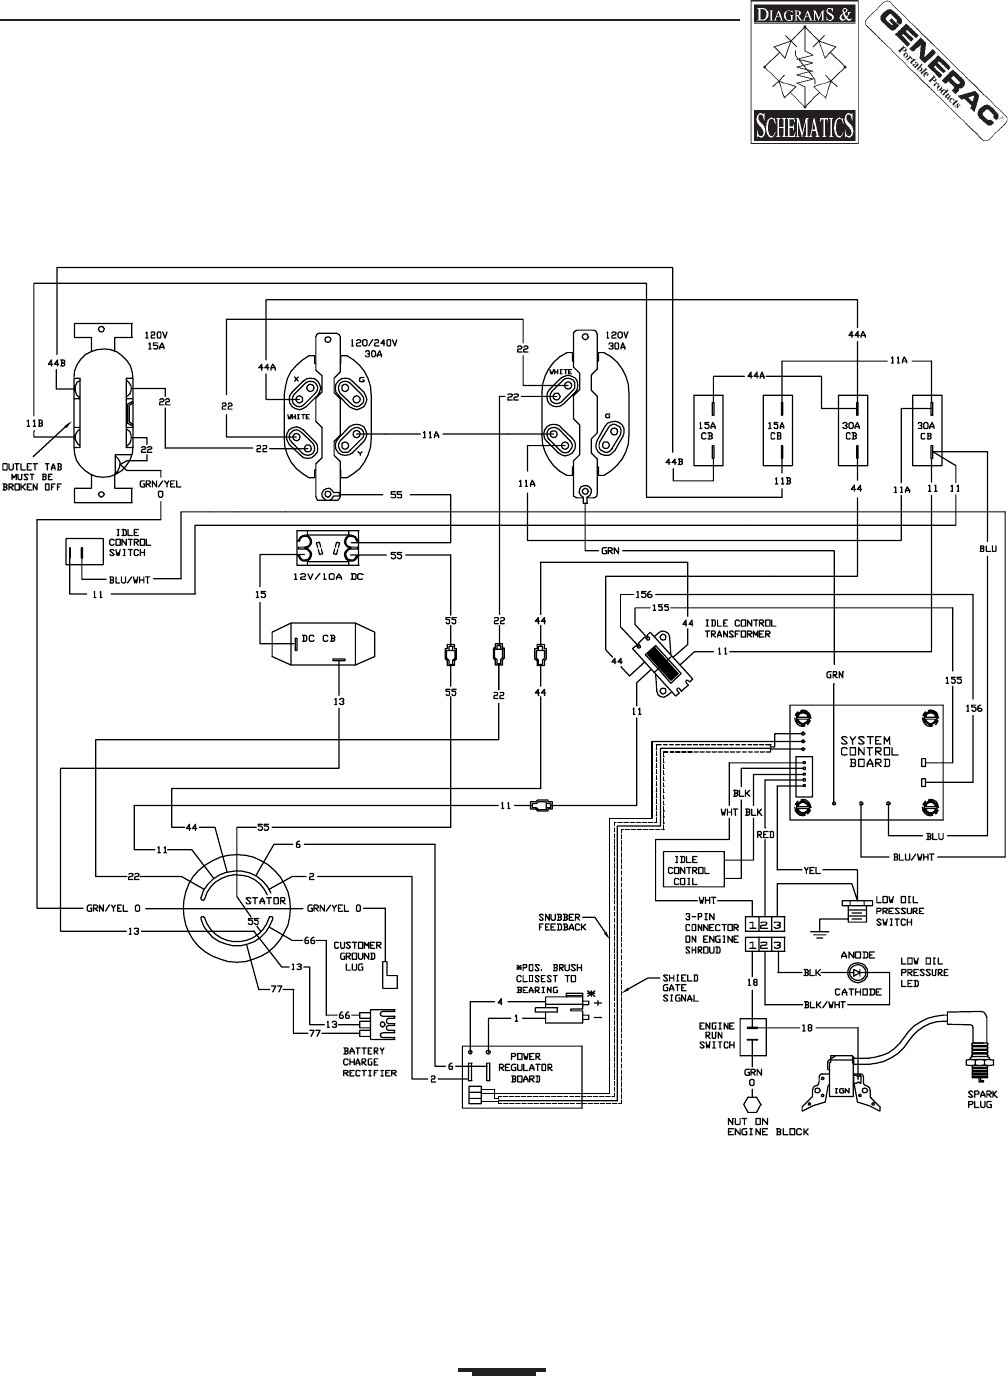 38c29e63 4610 4d0c 9aae d948c0ee2240 bgf?resize\\\\\\\\\\\\\=665%2C908 goulds pumps control panel wiring diagram 66 ford bronco wiring wiring diagrams 3 phase irrigation pump panel at gsmportal.co